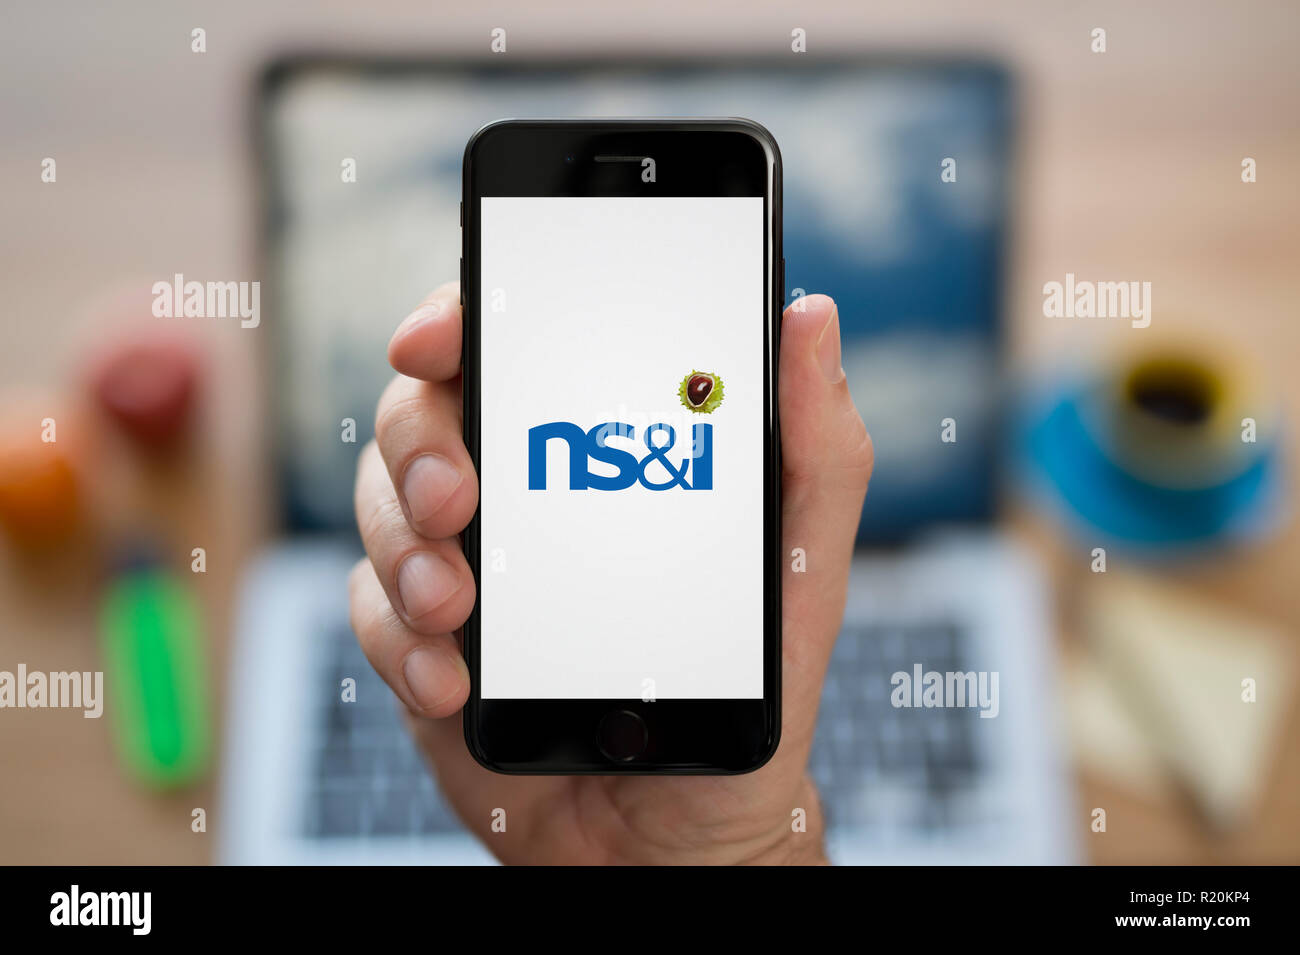 A man looks at his iPhone which displays the National Savings and Investments (NS&I) logo, while sat at his computer desk (Editorial use only). - Stock Image